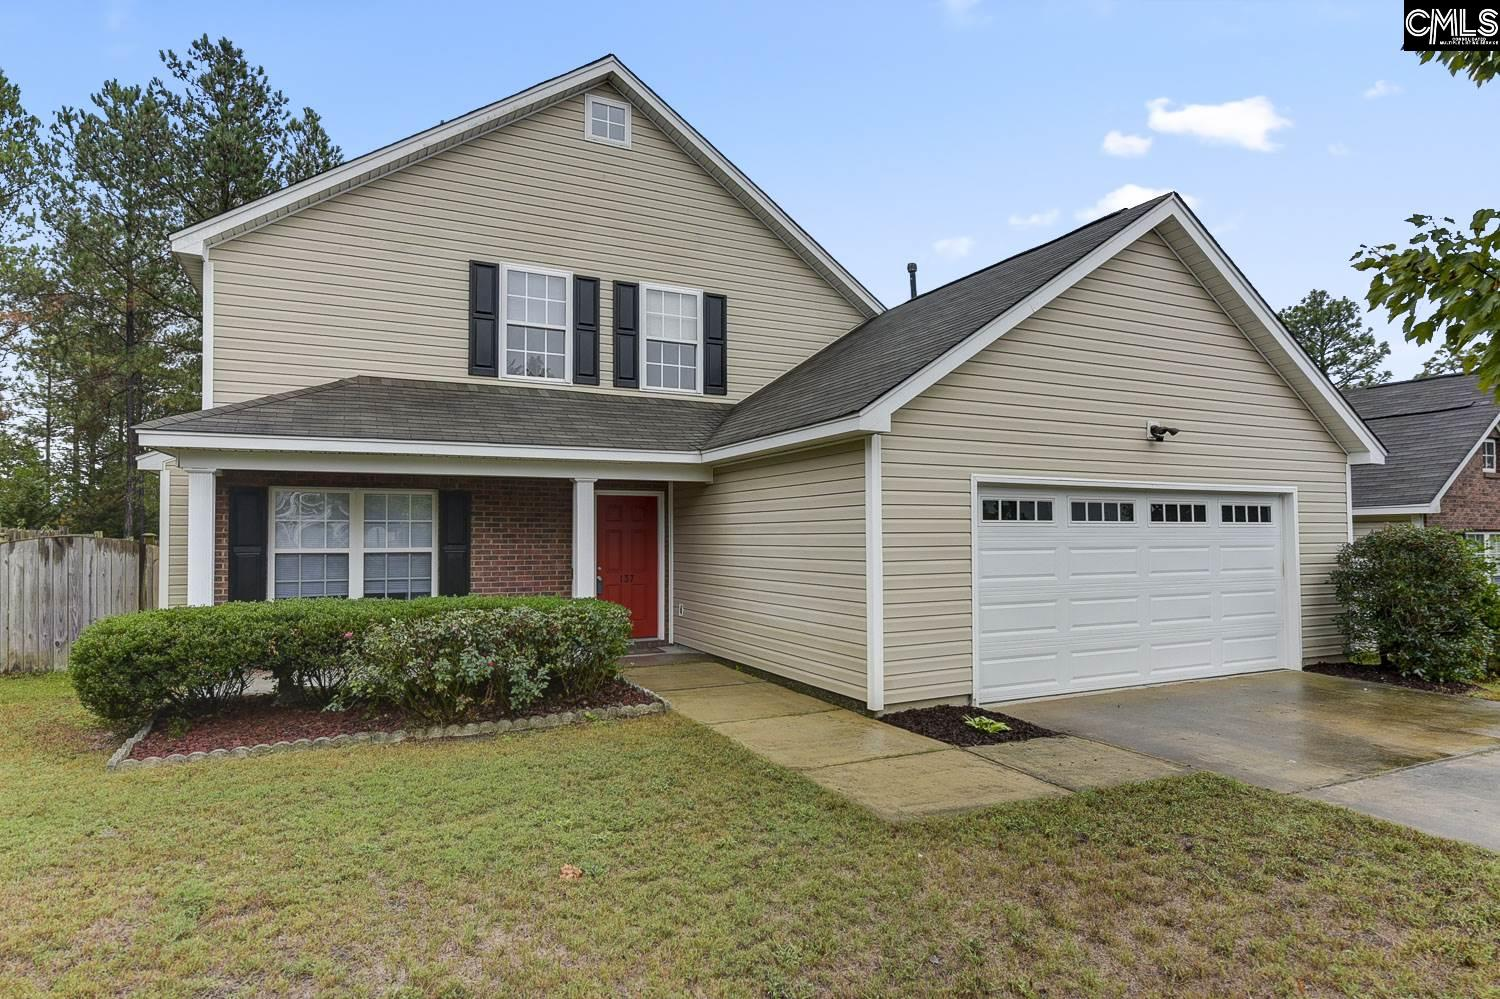 137 Riglaw Lexington, SC 29073